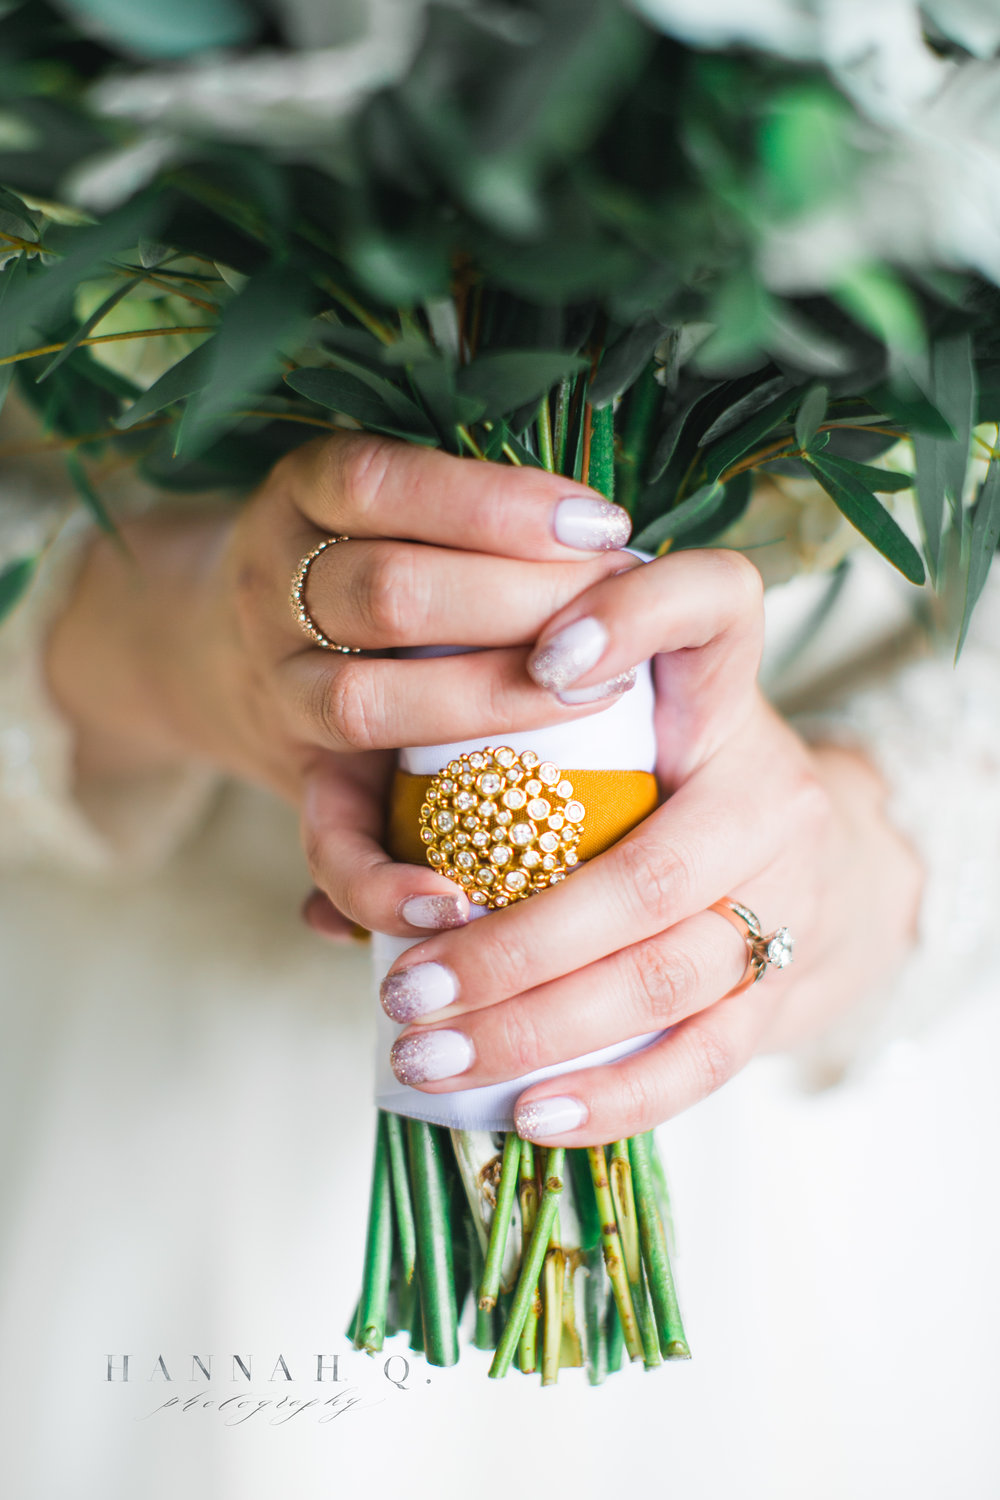 This thoughtful bride also tied her grandmother's earring to her bouquet.